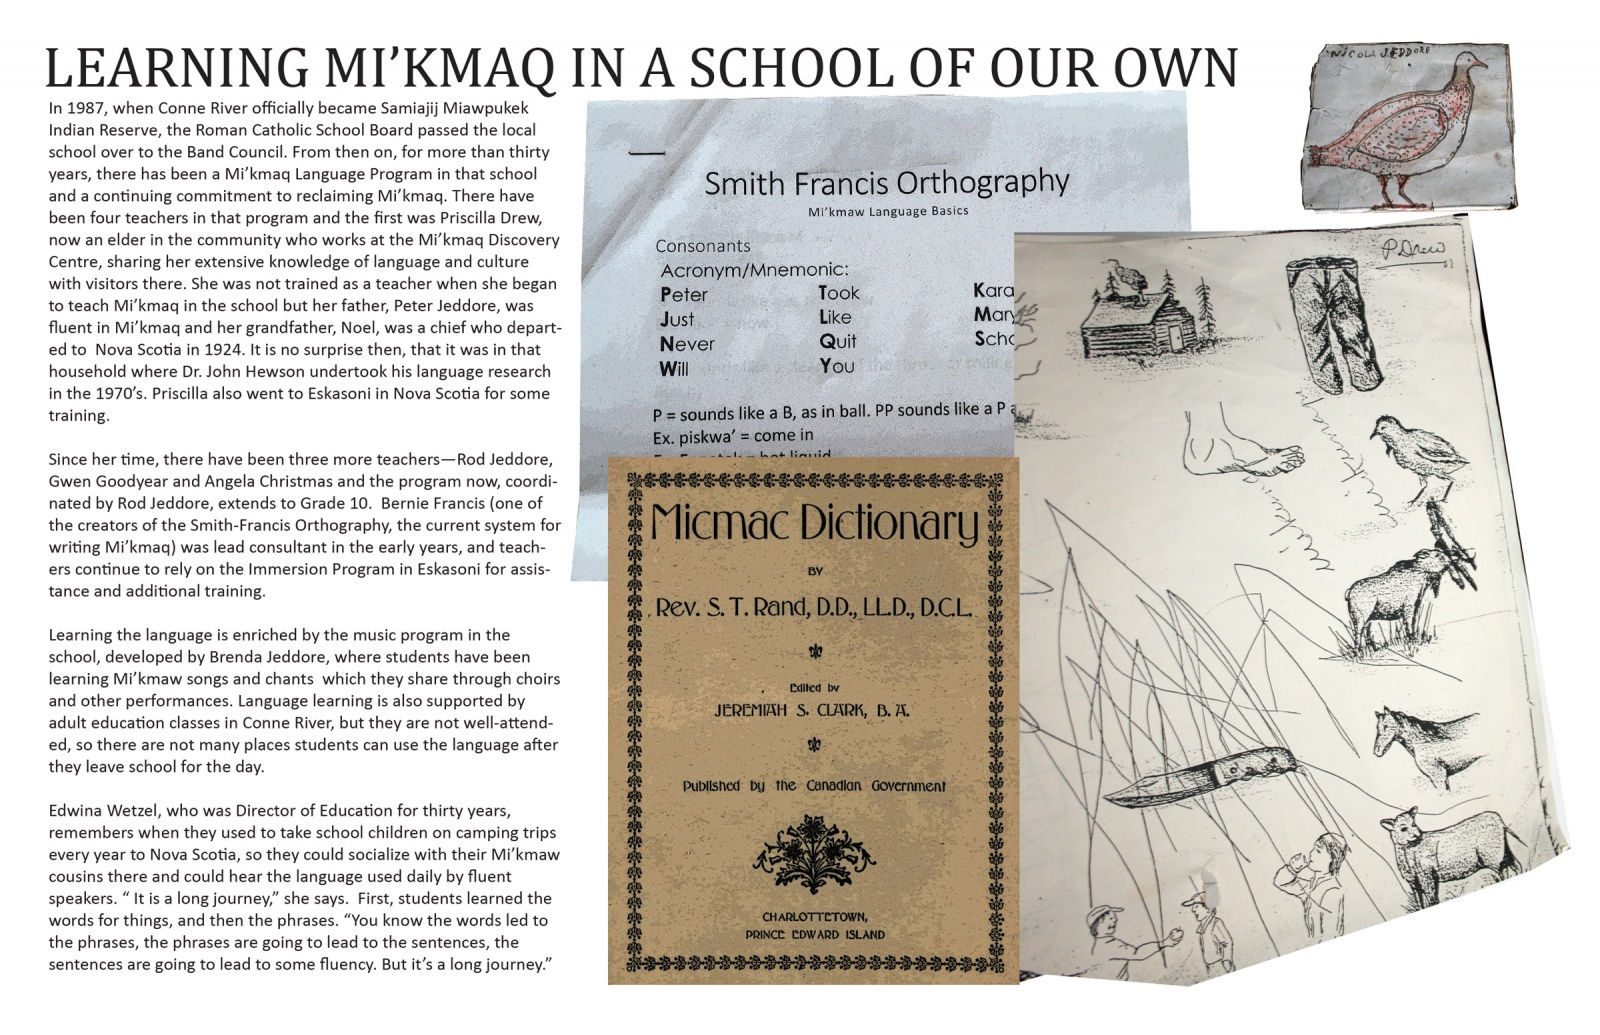 Learning Mi'kmaq in a School of Our Own